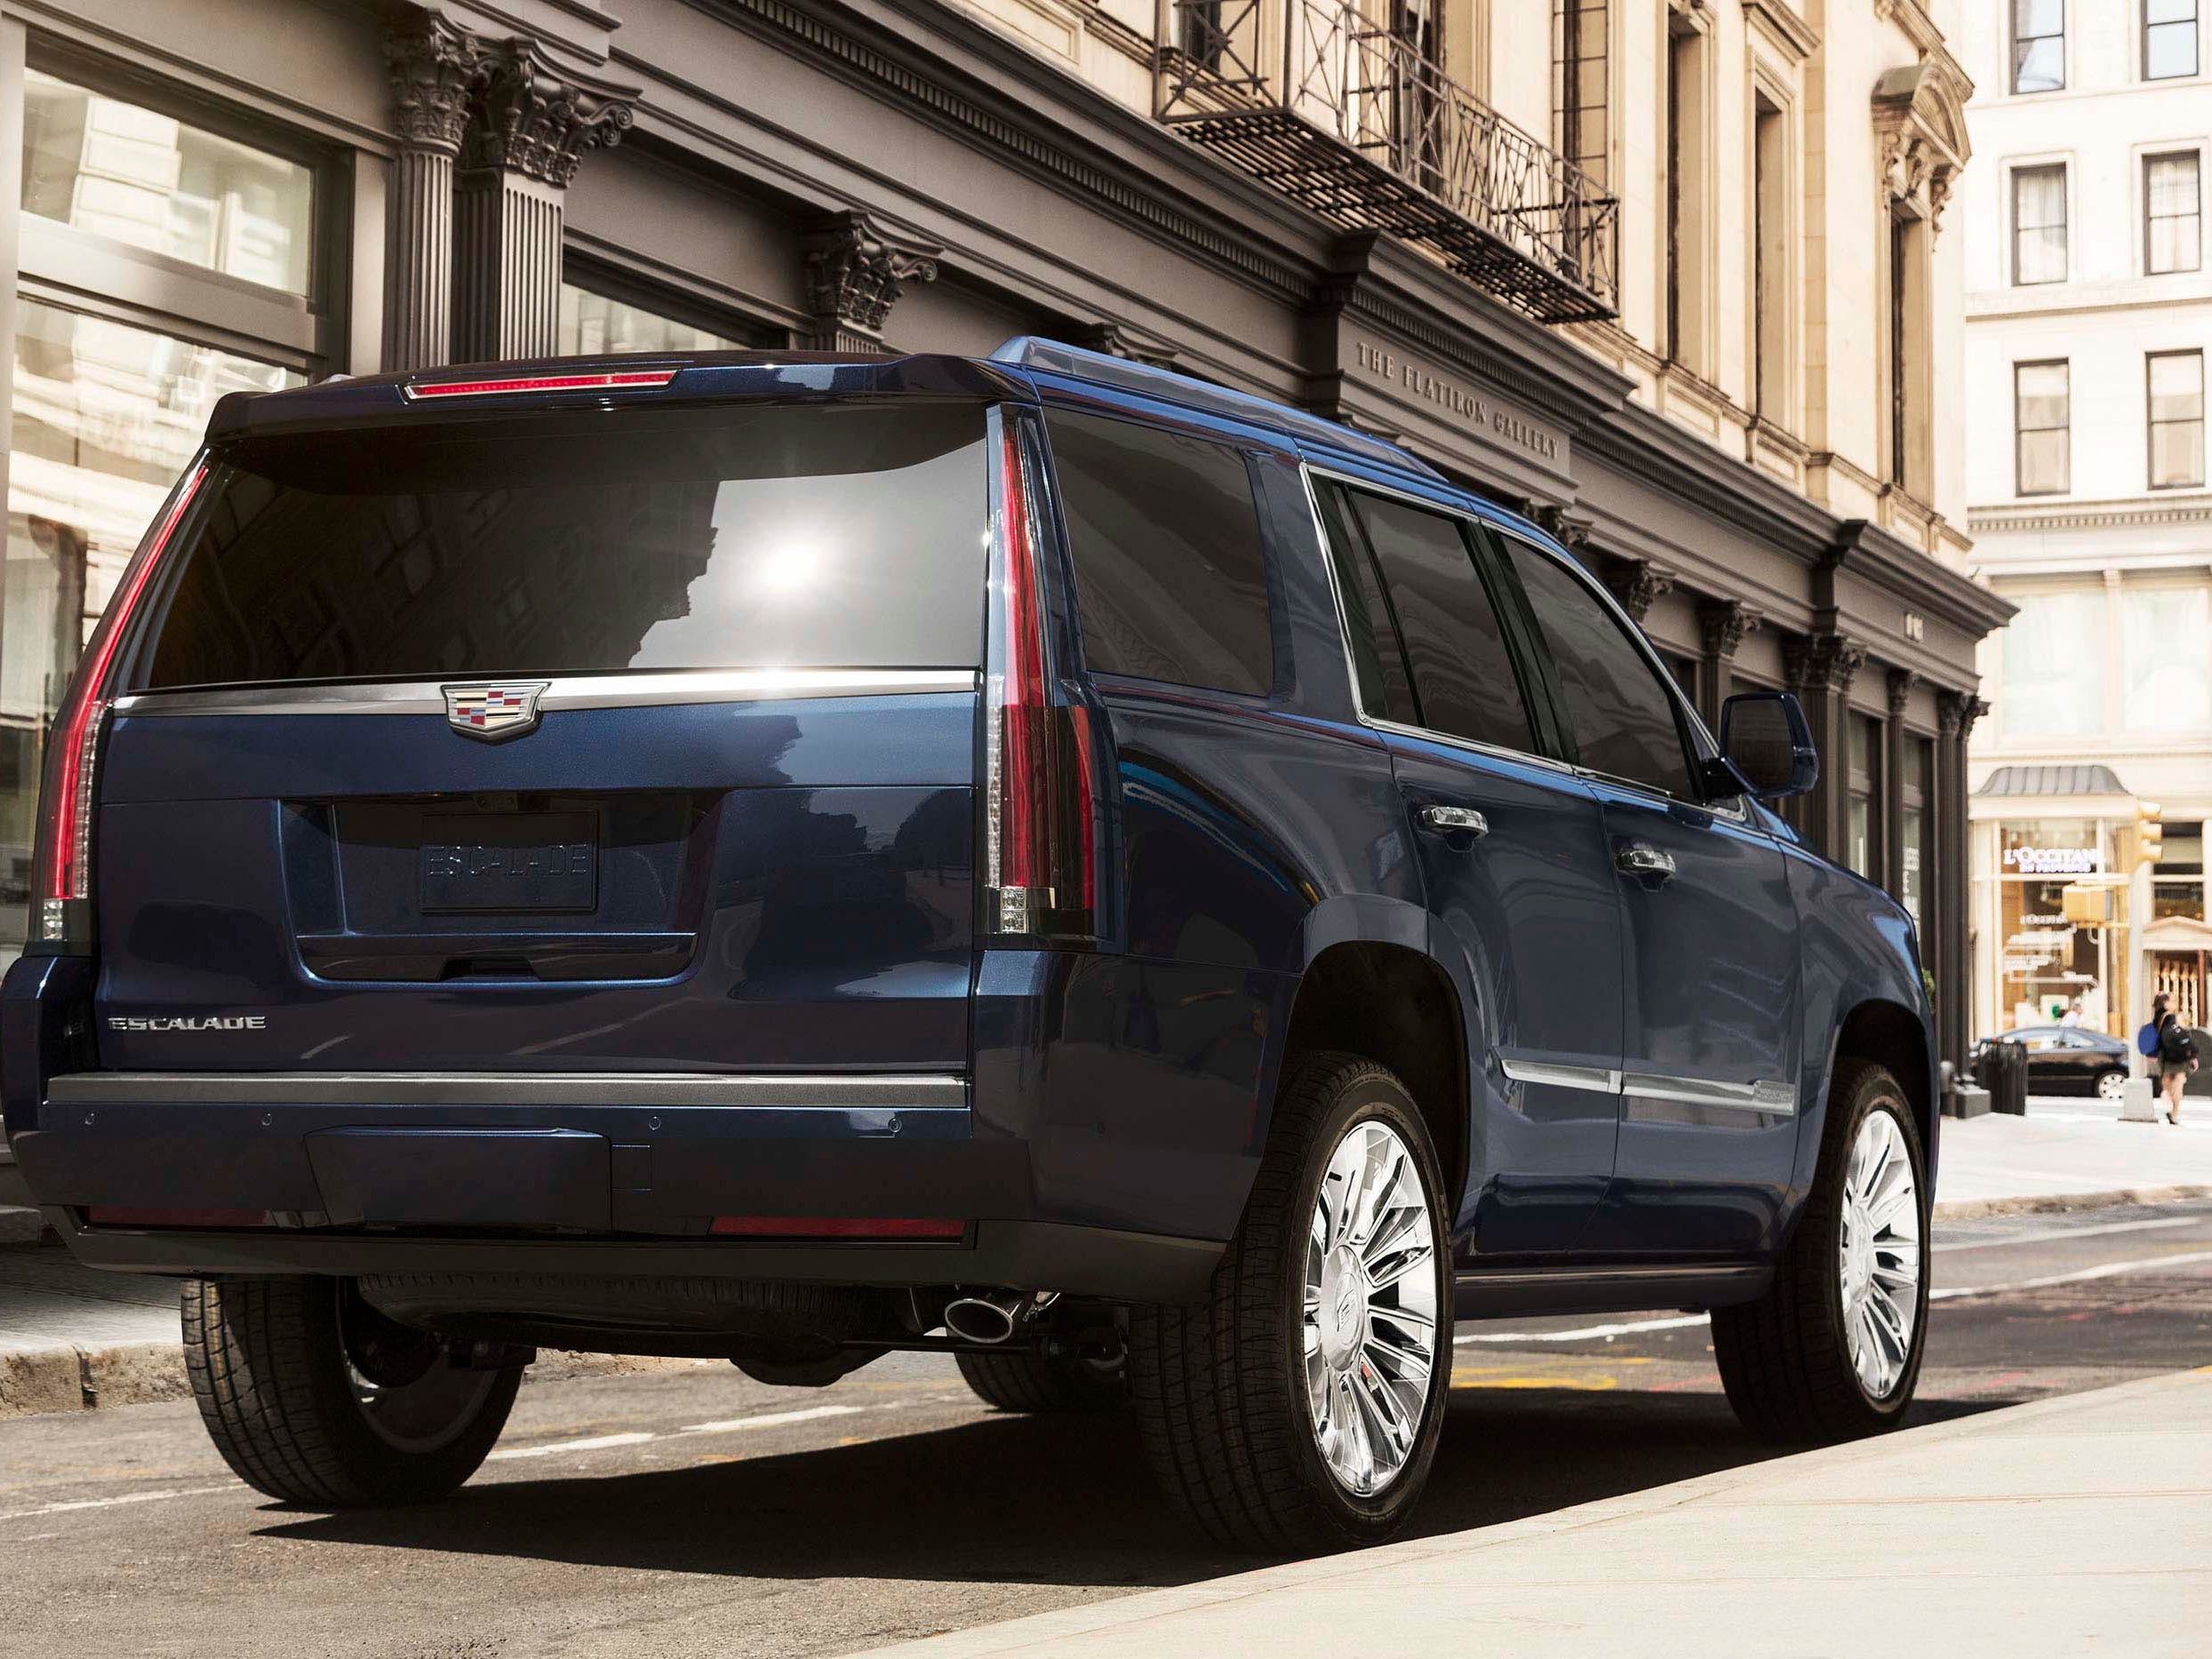 The Cadillac Escalade has evolved over the years from celebrity accessory to a steady seller in the large, family SUV segment with 20,000 in annual sales.